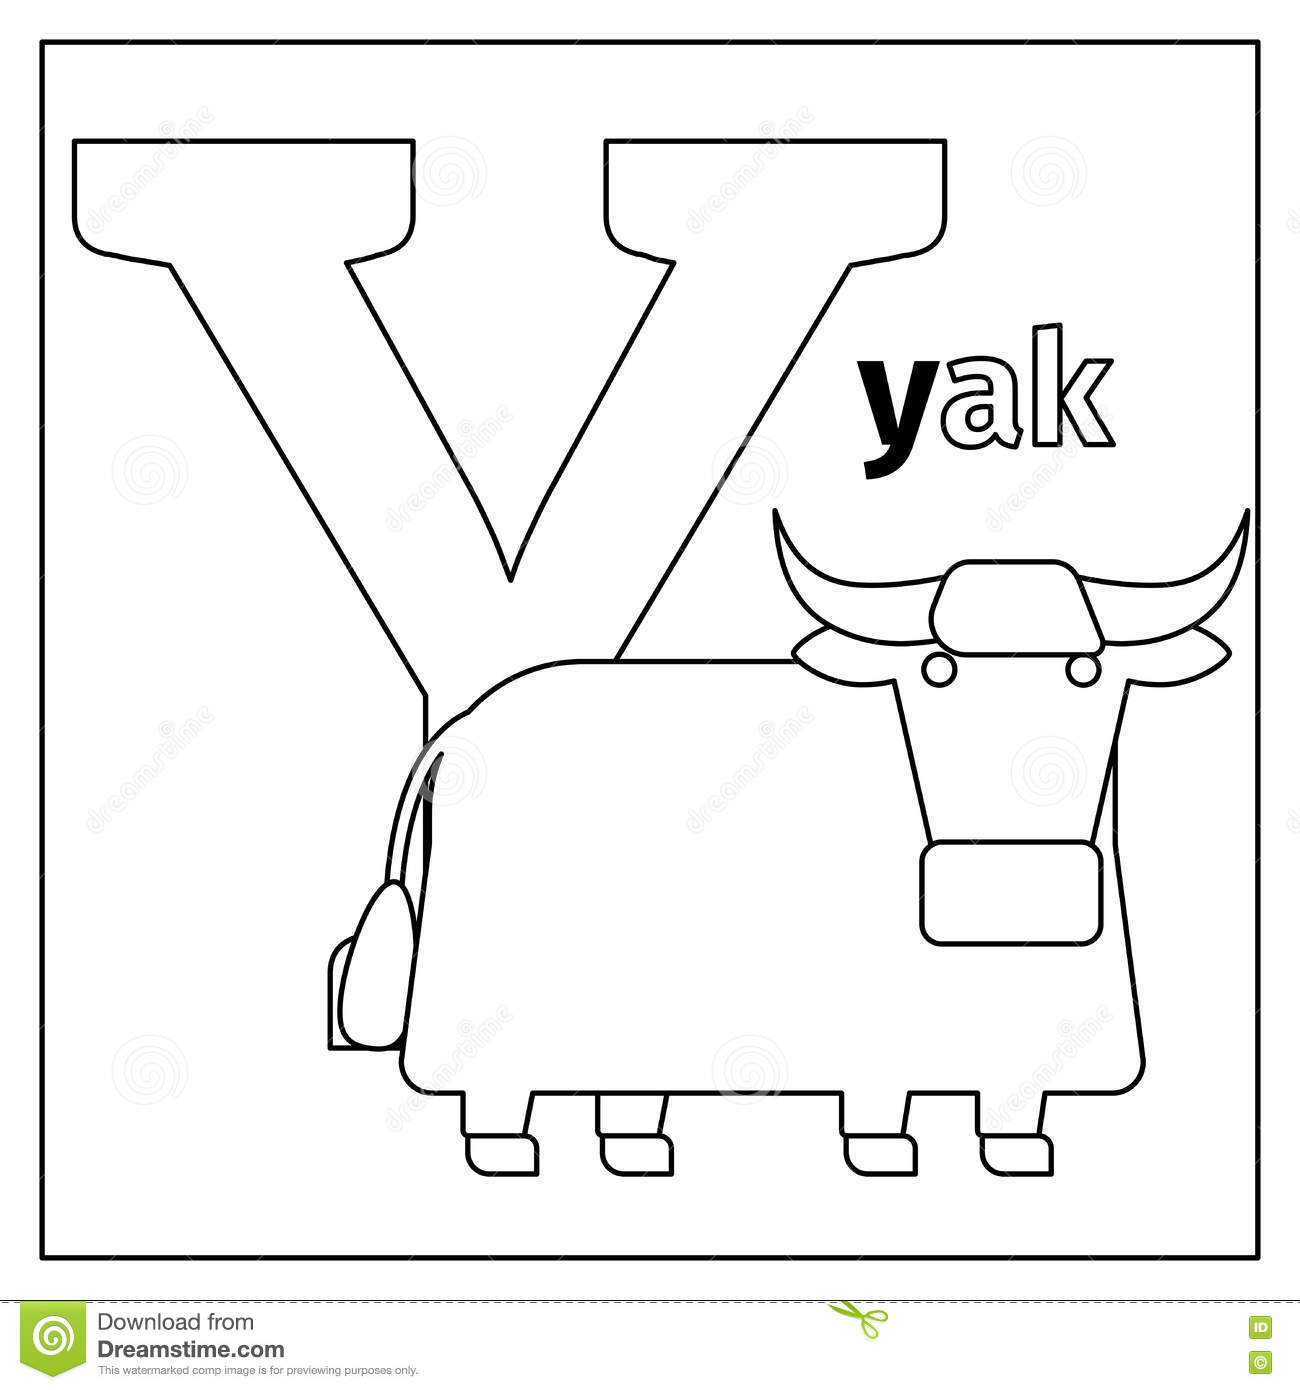 Yak, Letter Y Coloring Page Stock Vector - Illustration of letter ...